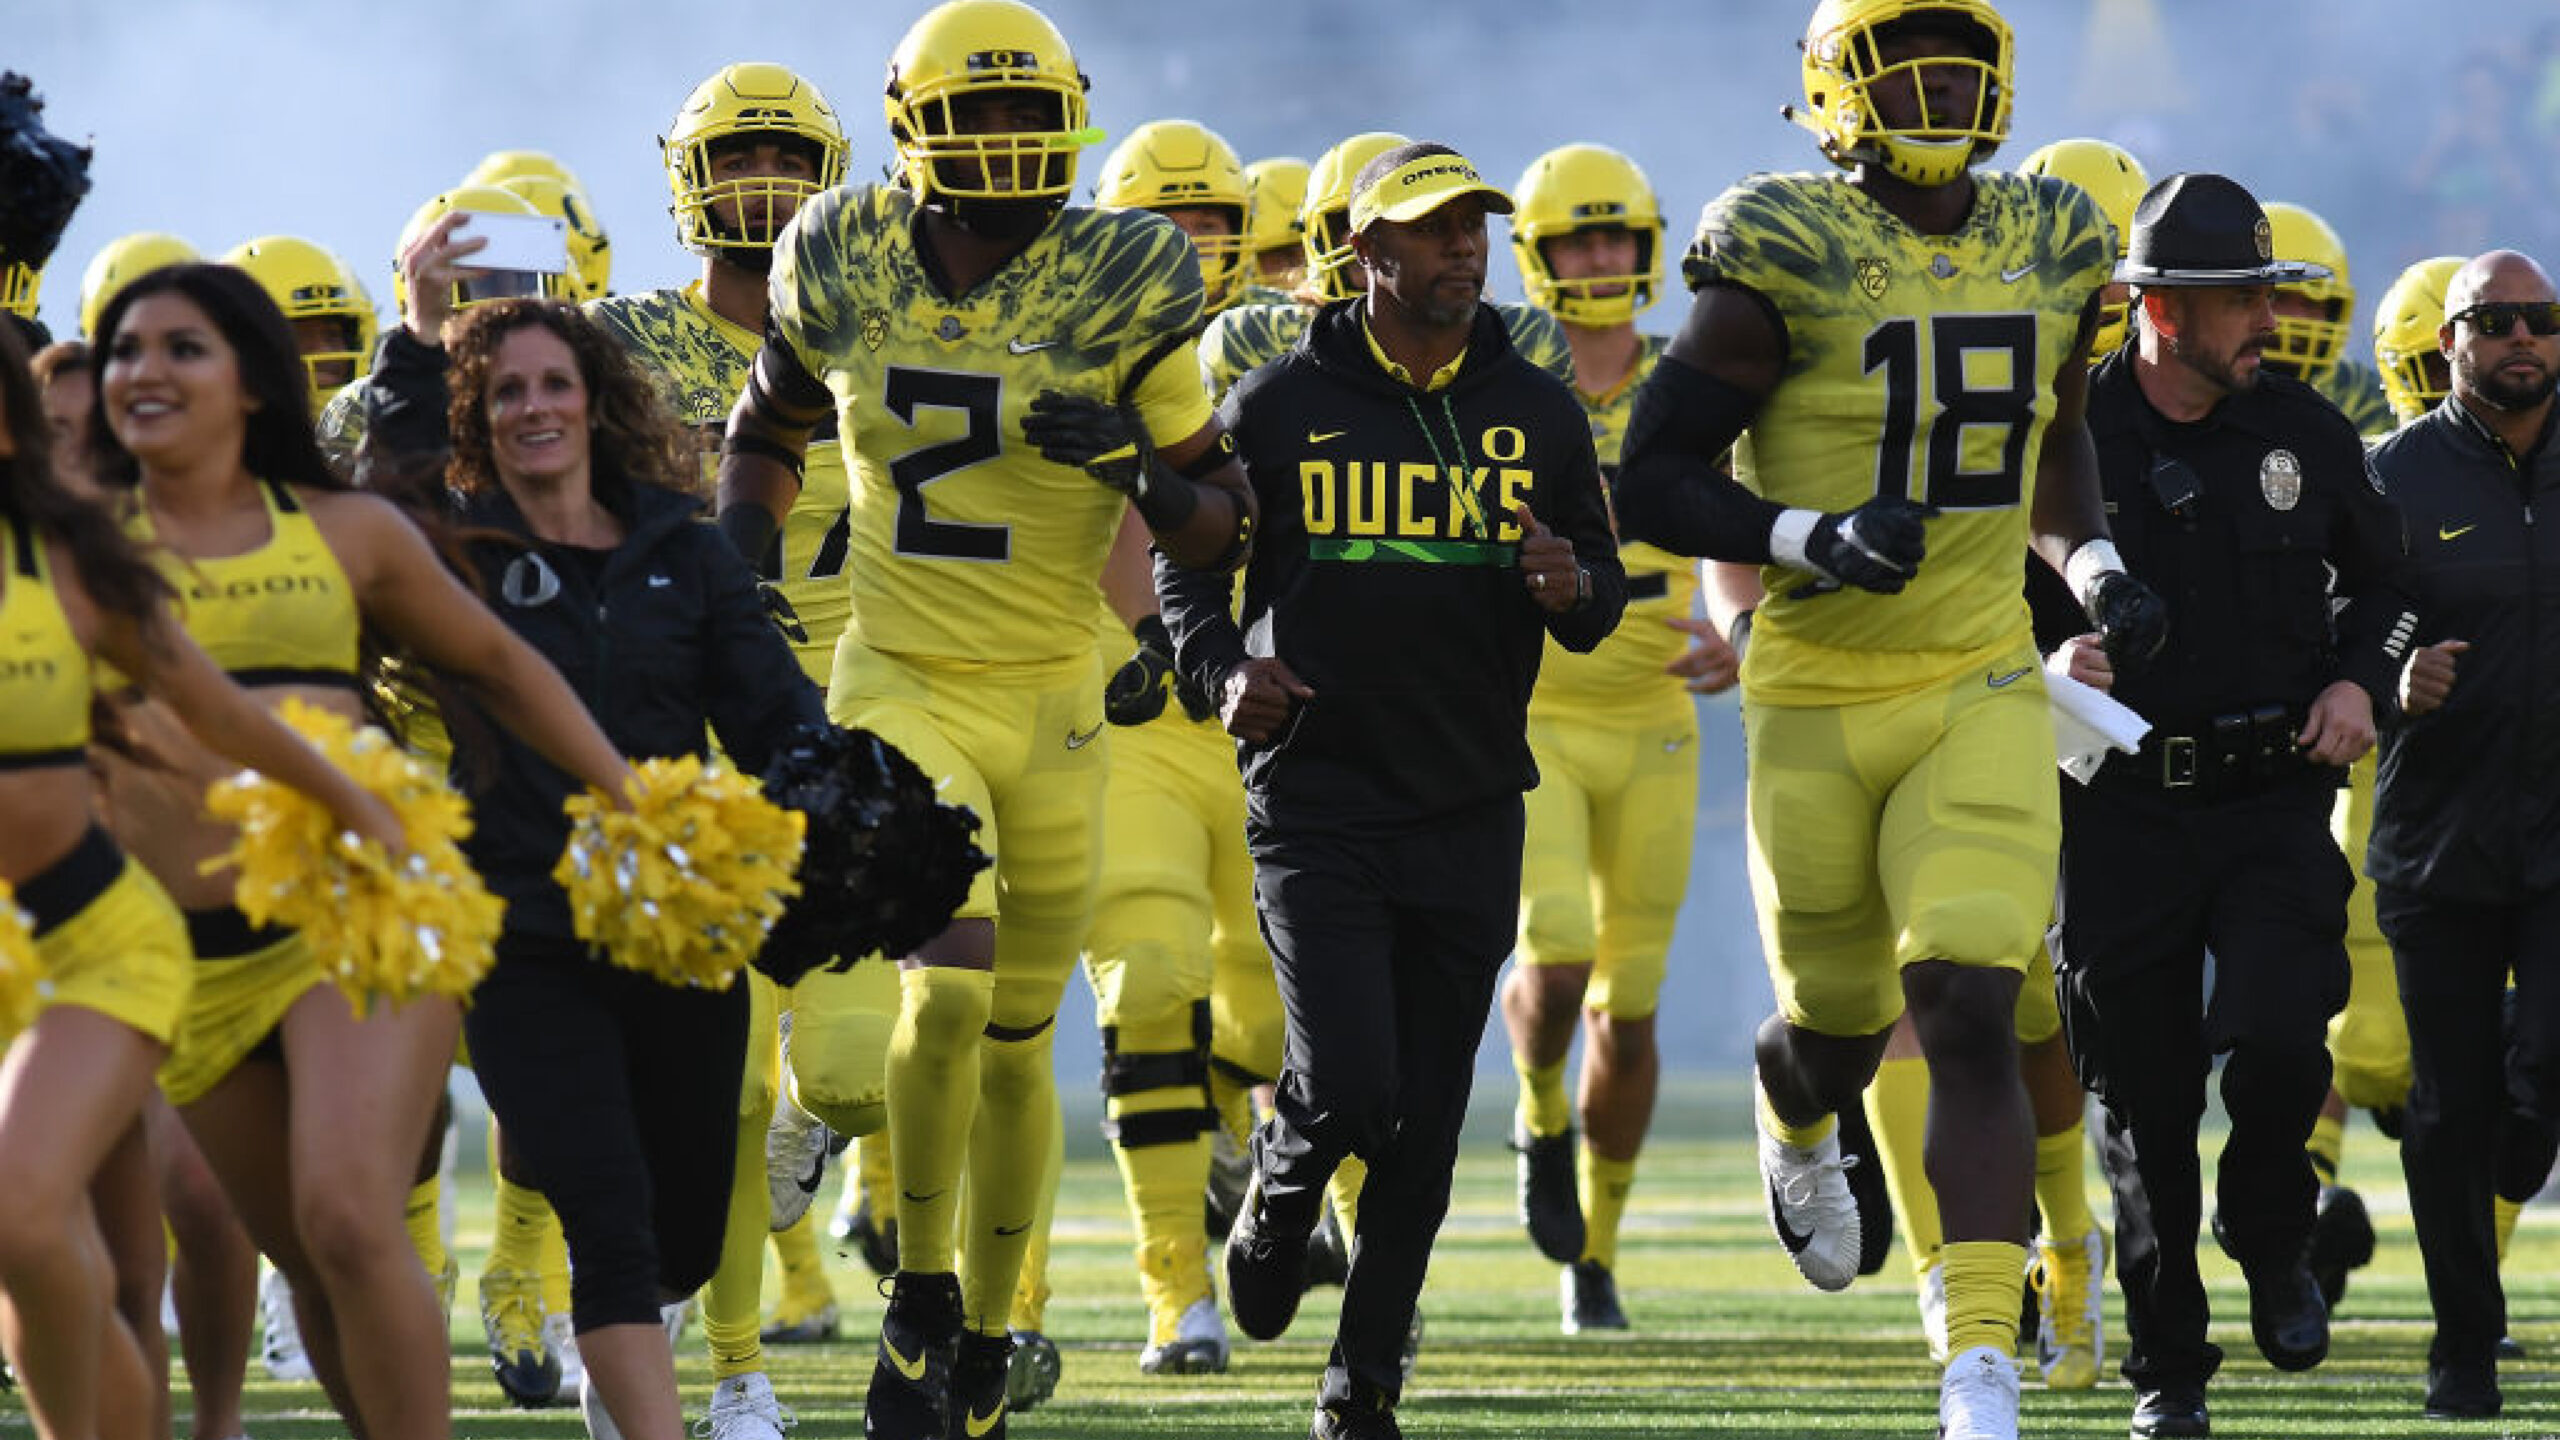 EUGENE, OR - OCTOBER 07: University of Oregon head coach Willie Taggart leads the team onto the field during a college football game between the Washington State Cougars and Oregon Ducks on October 7, 2017, at Autzen Stadium in Eugene, OR. (Photo by Brian Murphy/Icon Sportswire via Getty Images)